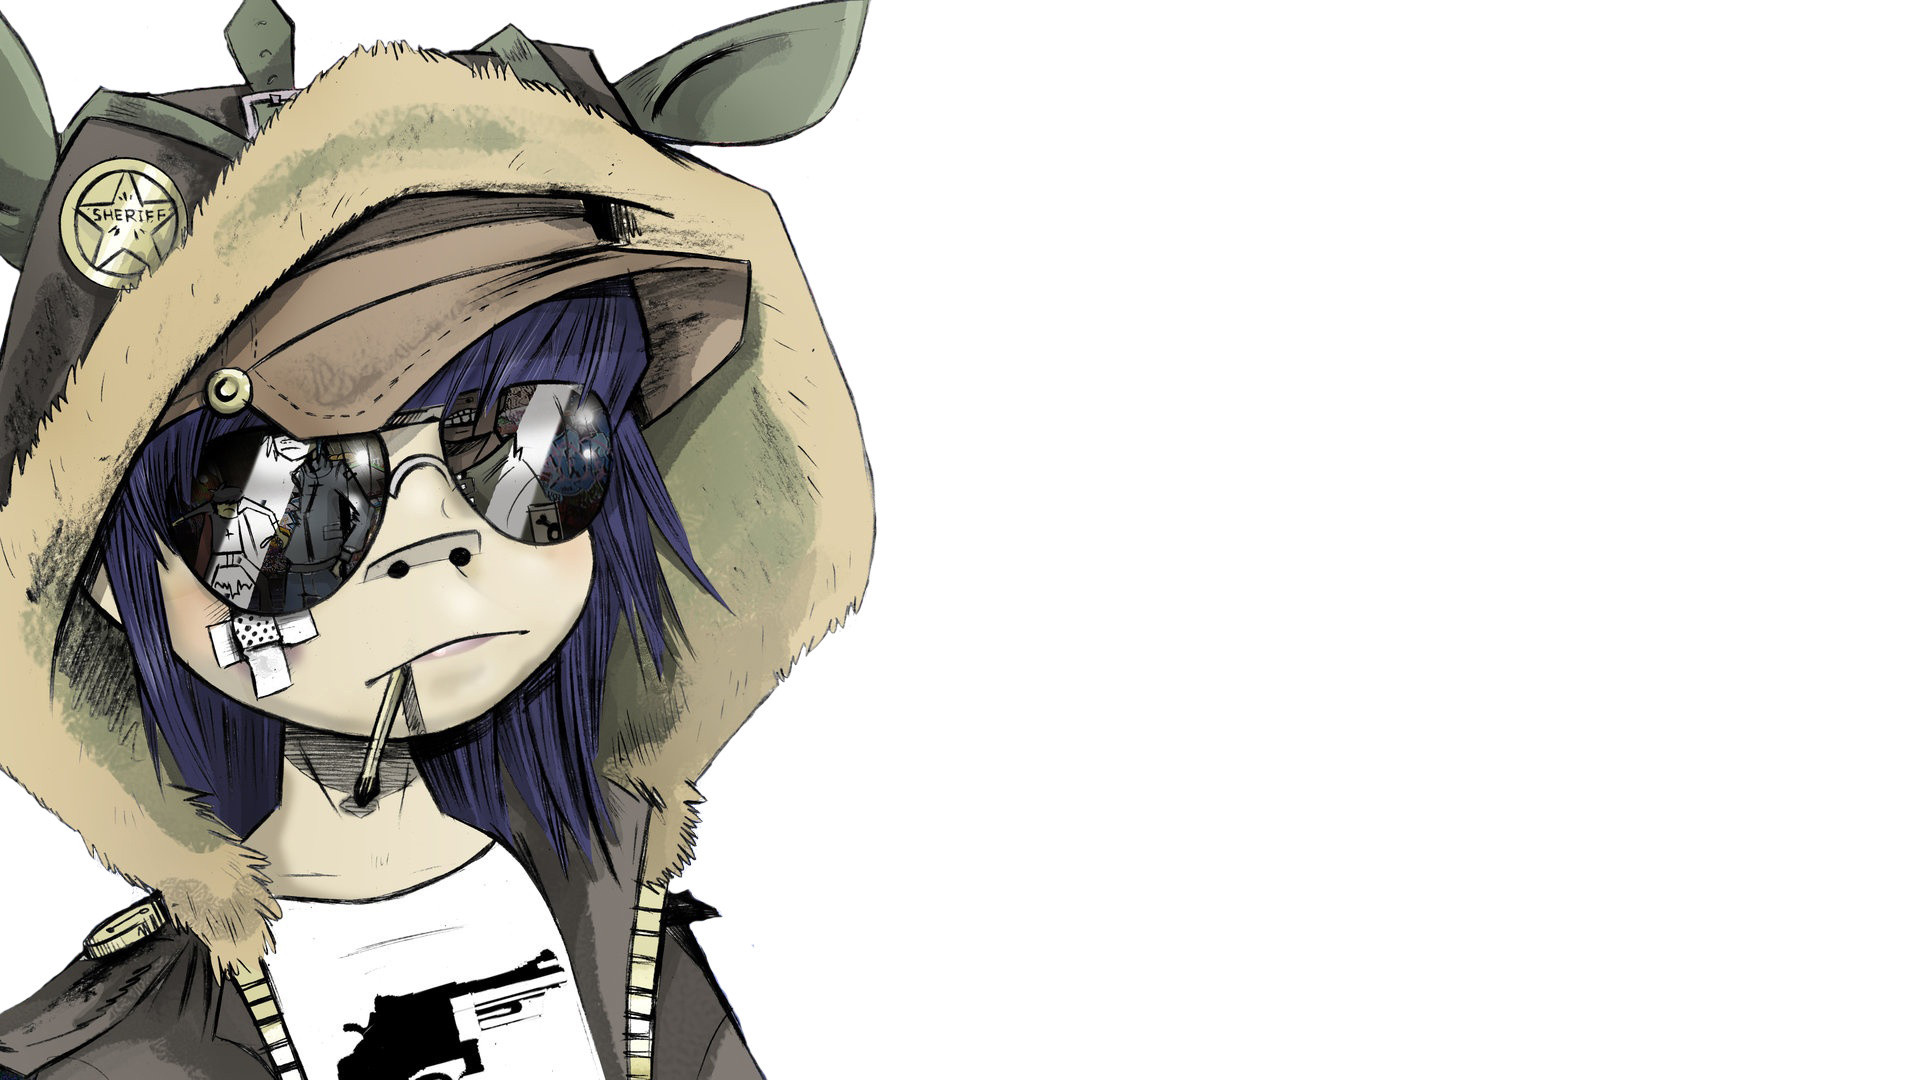 1920x1080 1680x1050 Gorillaz 2d Stuart Pot  Wallpaper Art Hd Wallpaper